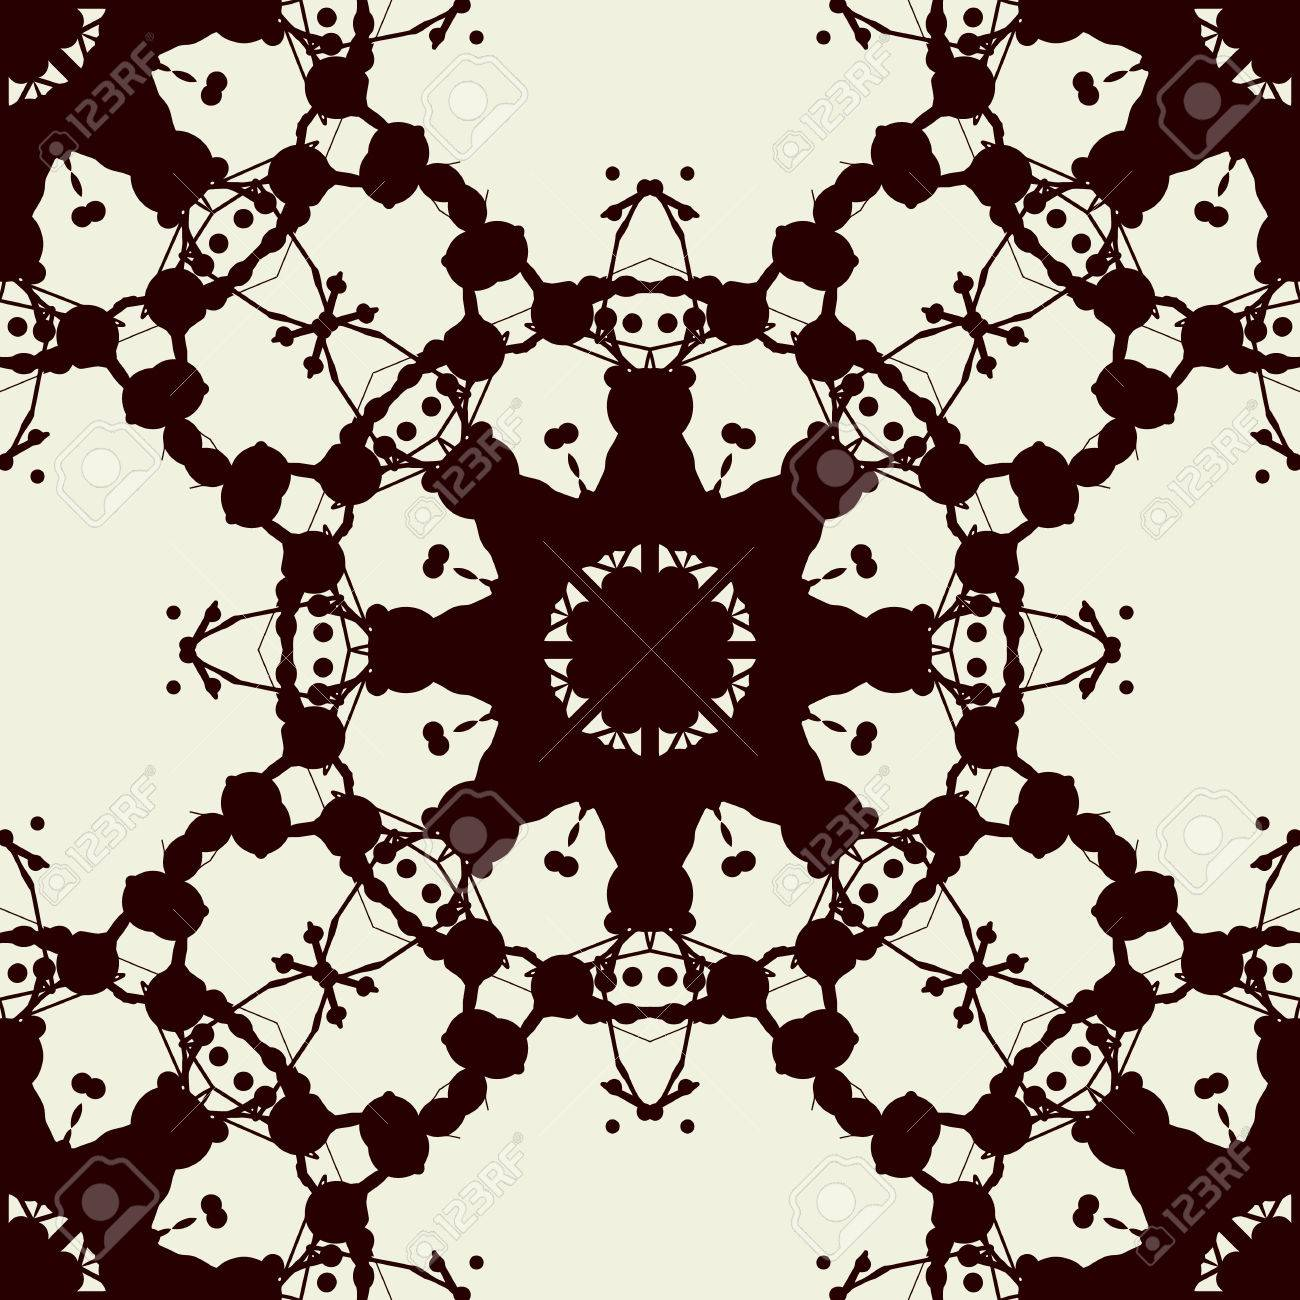 Seamless Print Based On Rorschach Inkblot Test Abstract Seamless Royalty Free Cliparts Vectors And Stock Illustration Image 62460264